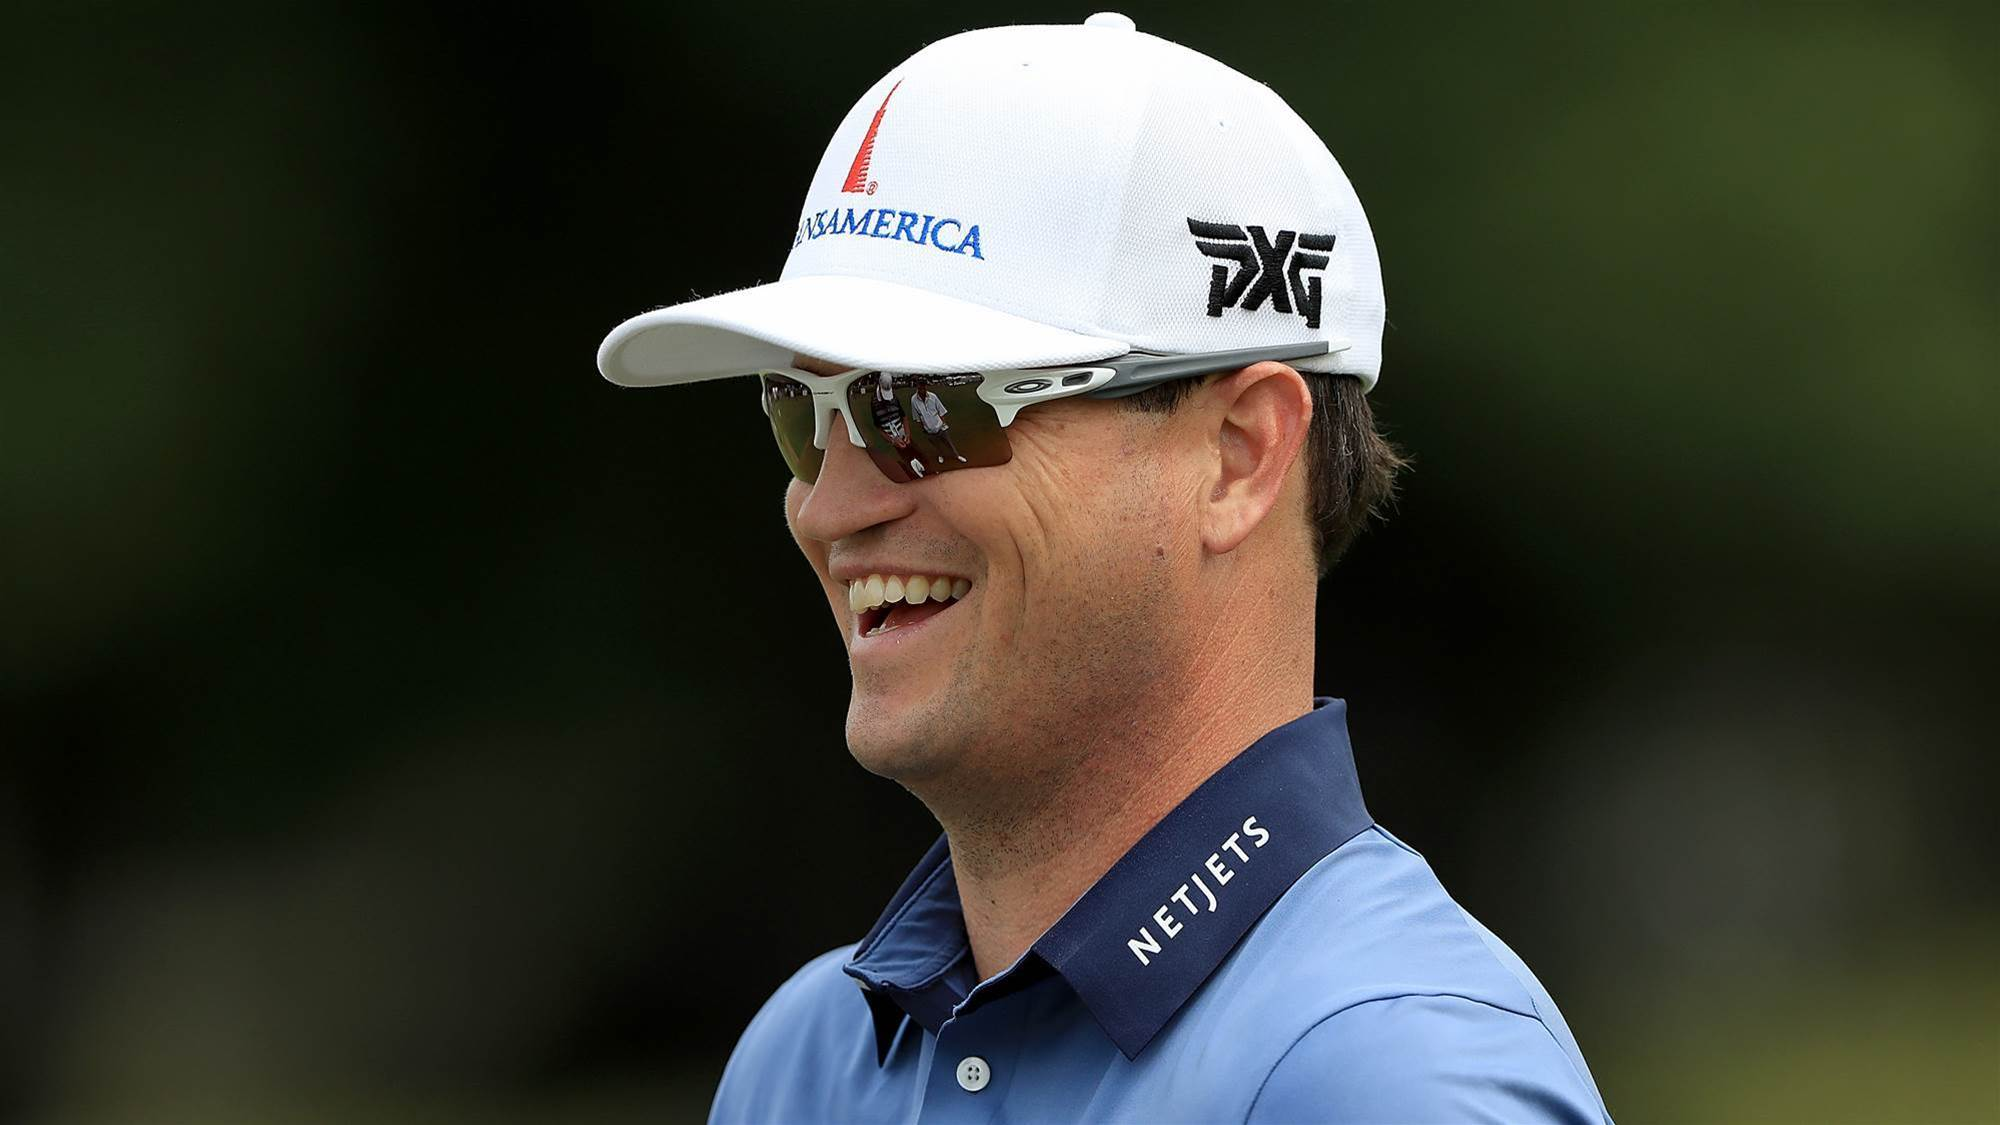 Zach Johnson lines up twice at US PGA